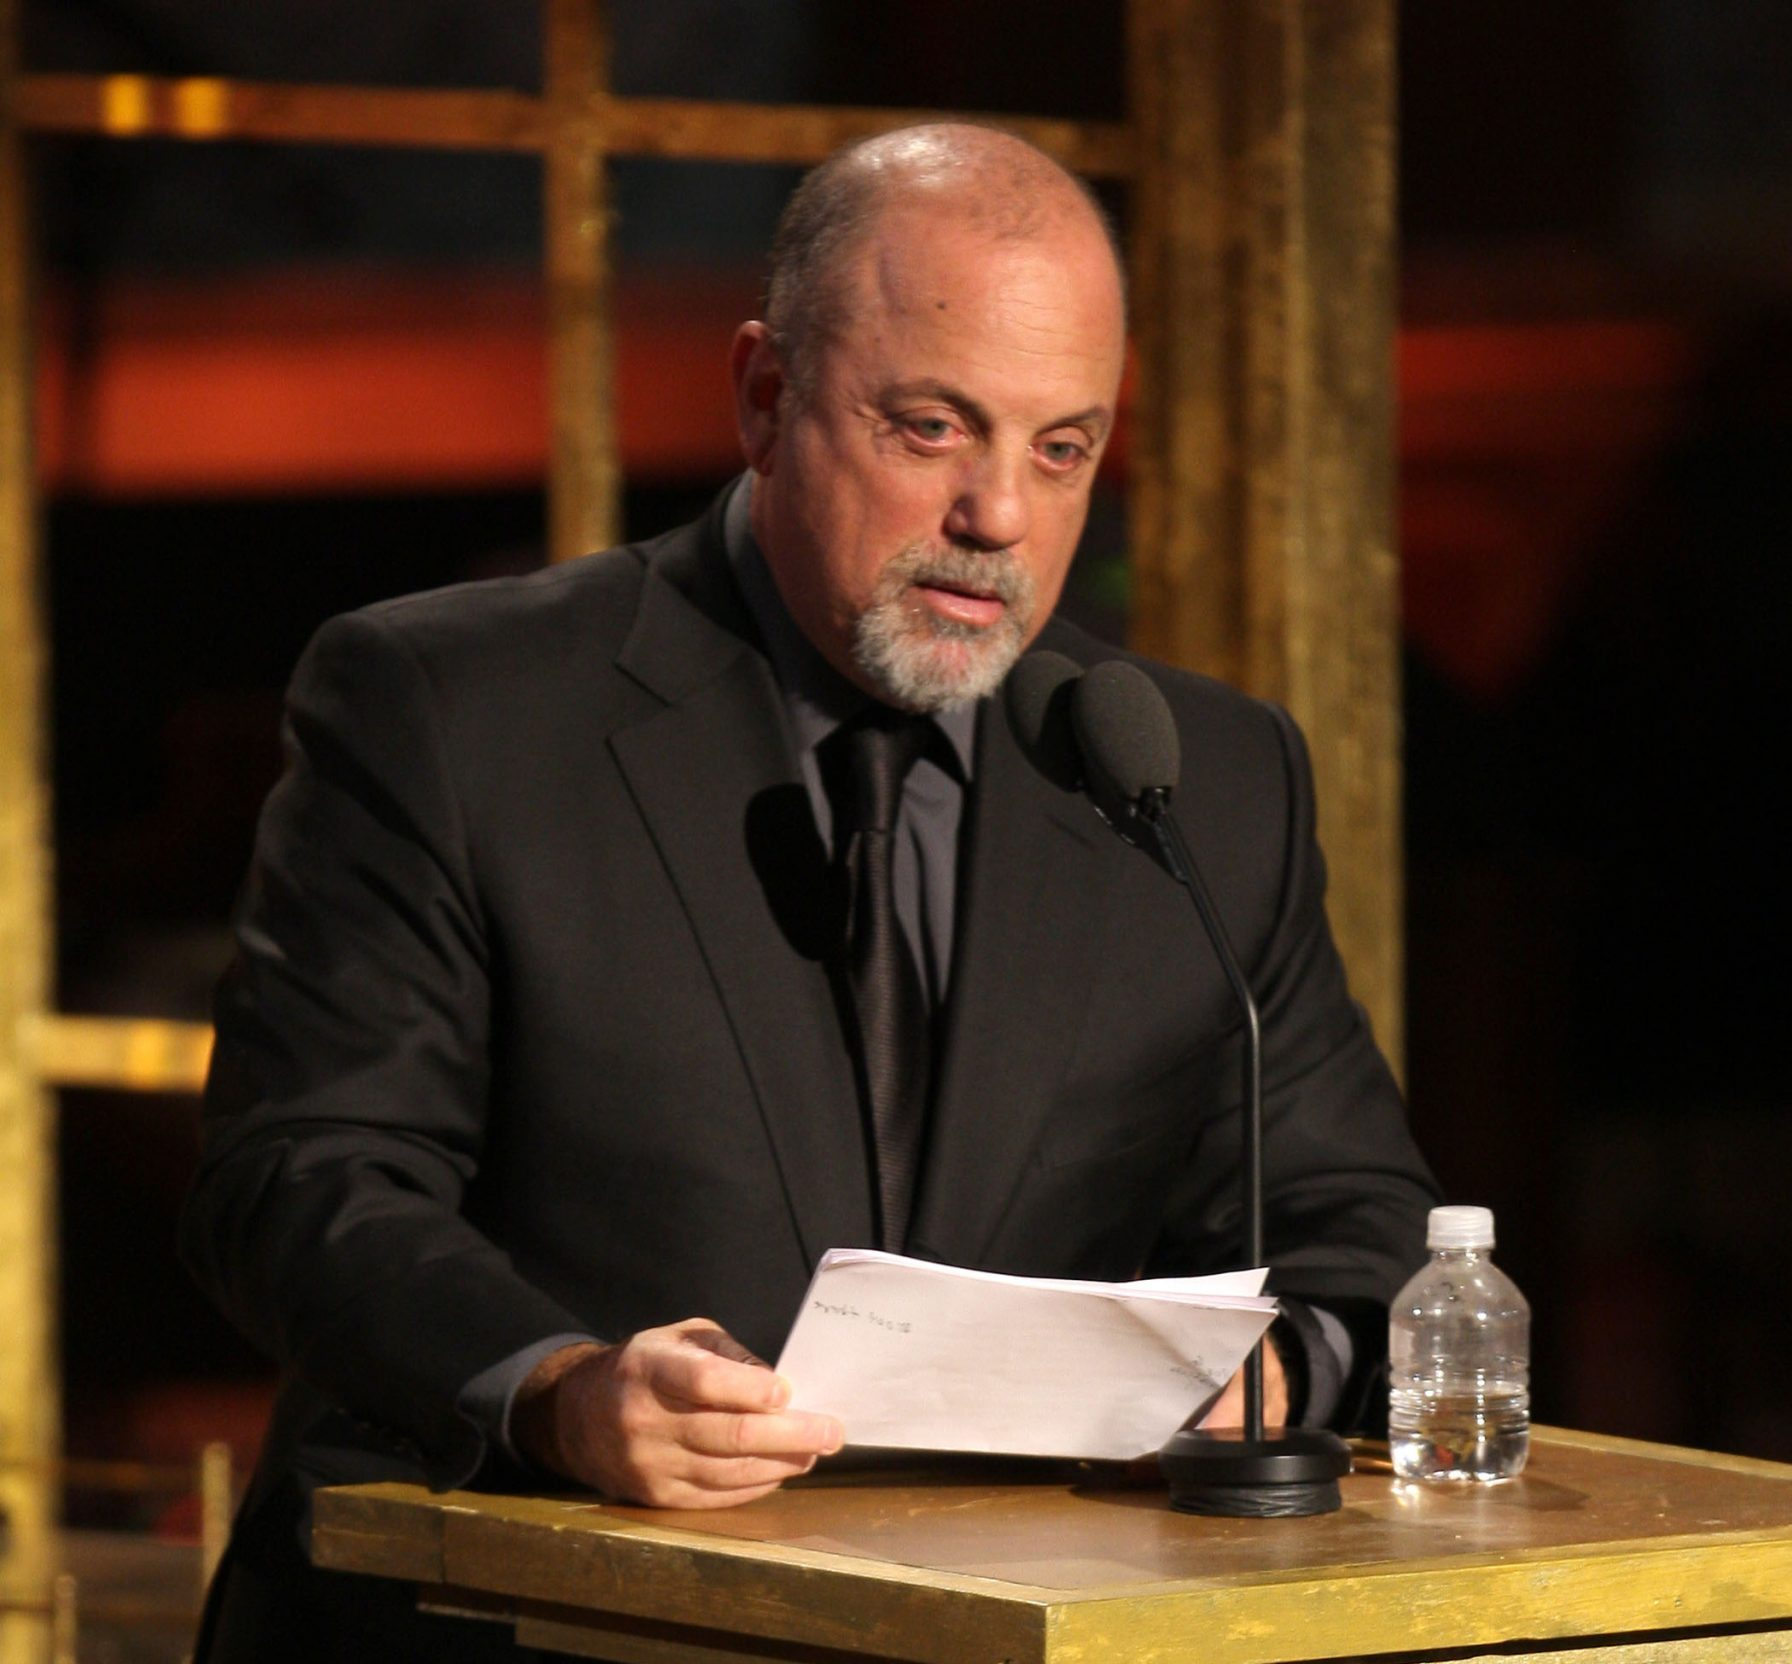 GettyImages 80195356 scaled e1621426762302 20 Things You Probably Didn't Know About Billy Joel